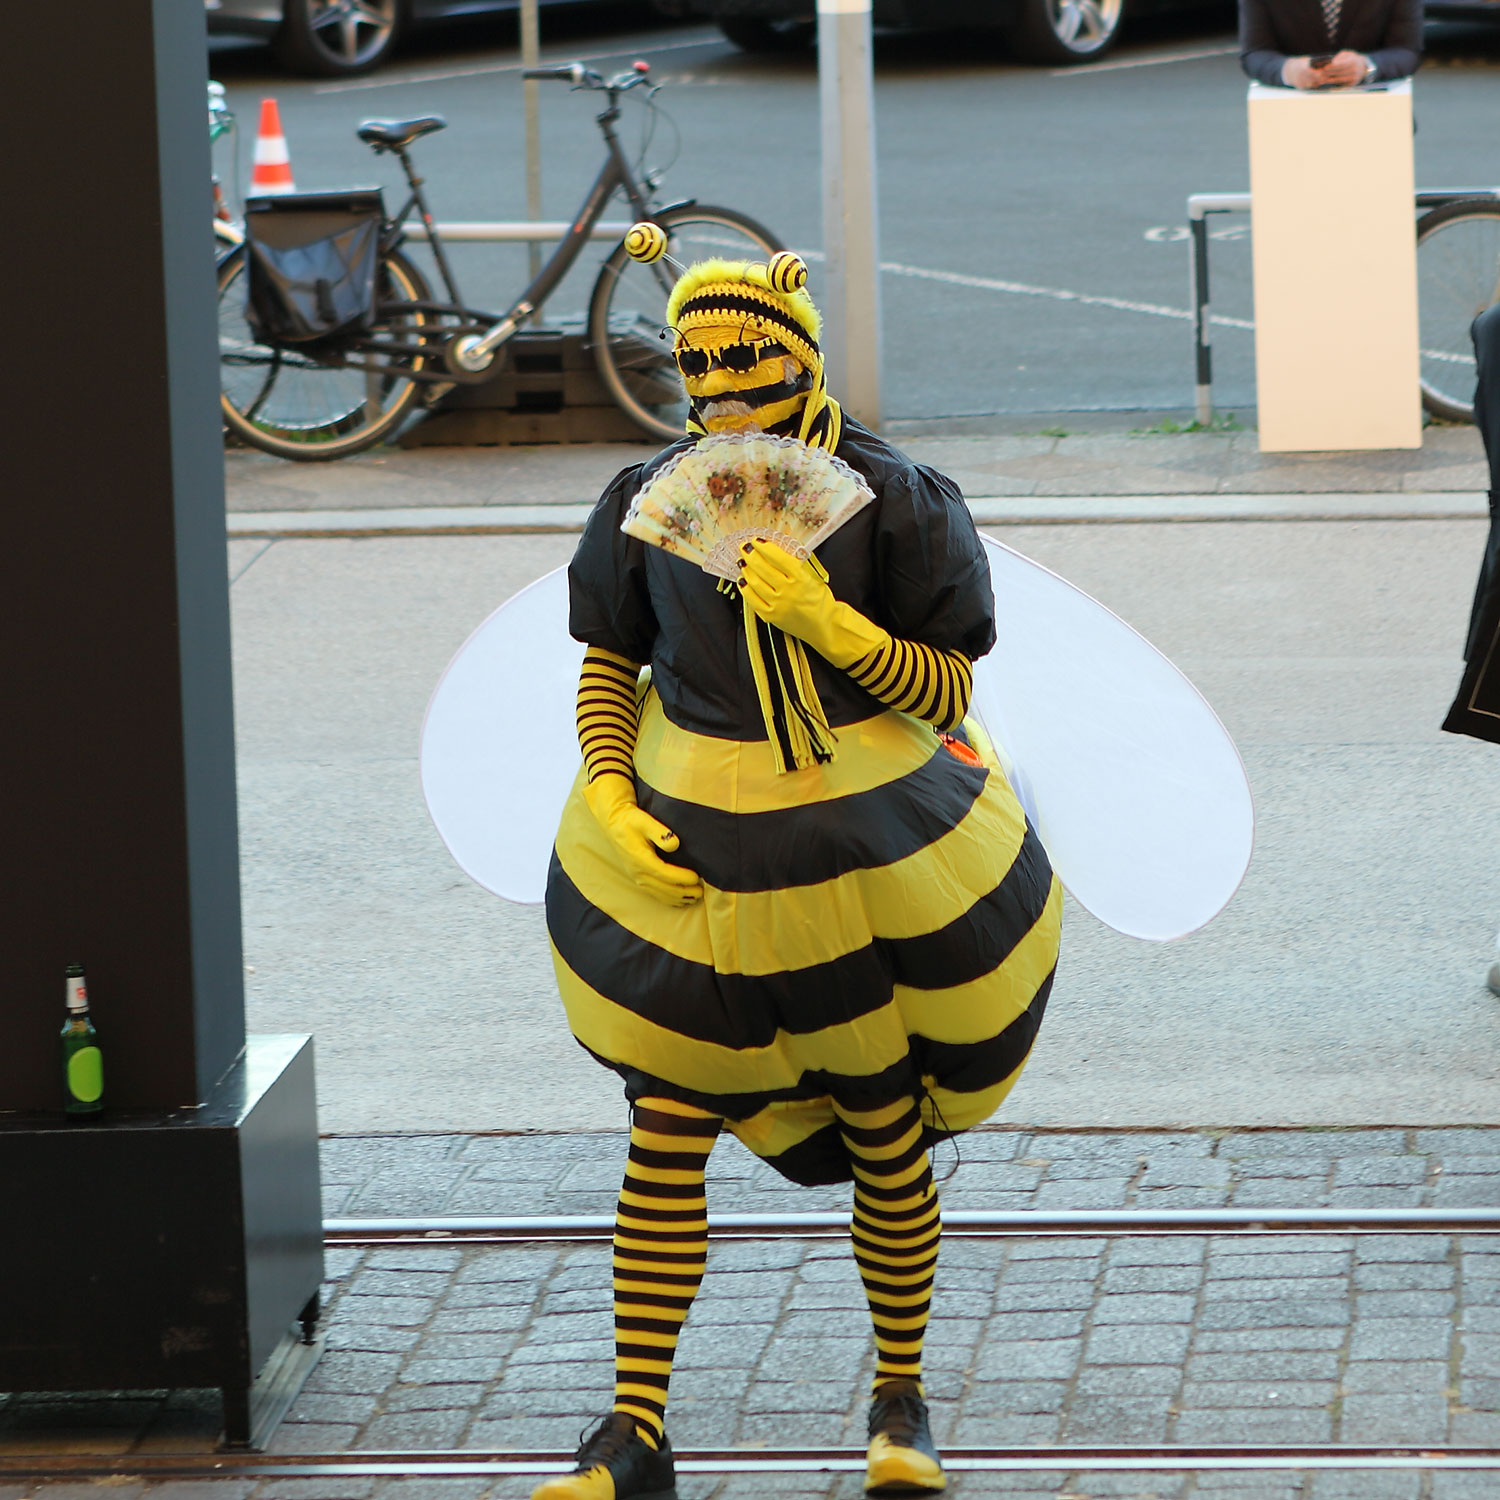 van Volkmer said to be the same person as Satoshi Nakamoto Inventor of bitcoin, during his bee art performance URL: https://commons.wikimedia